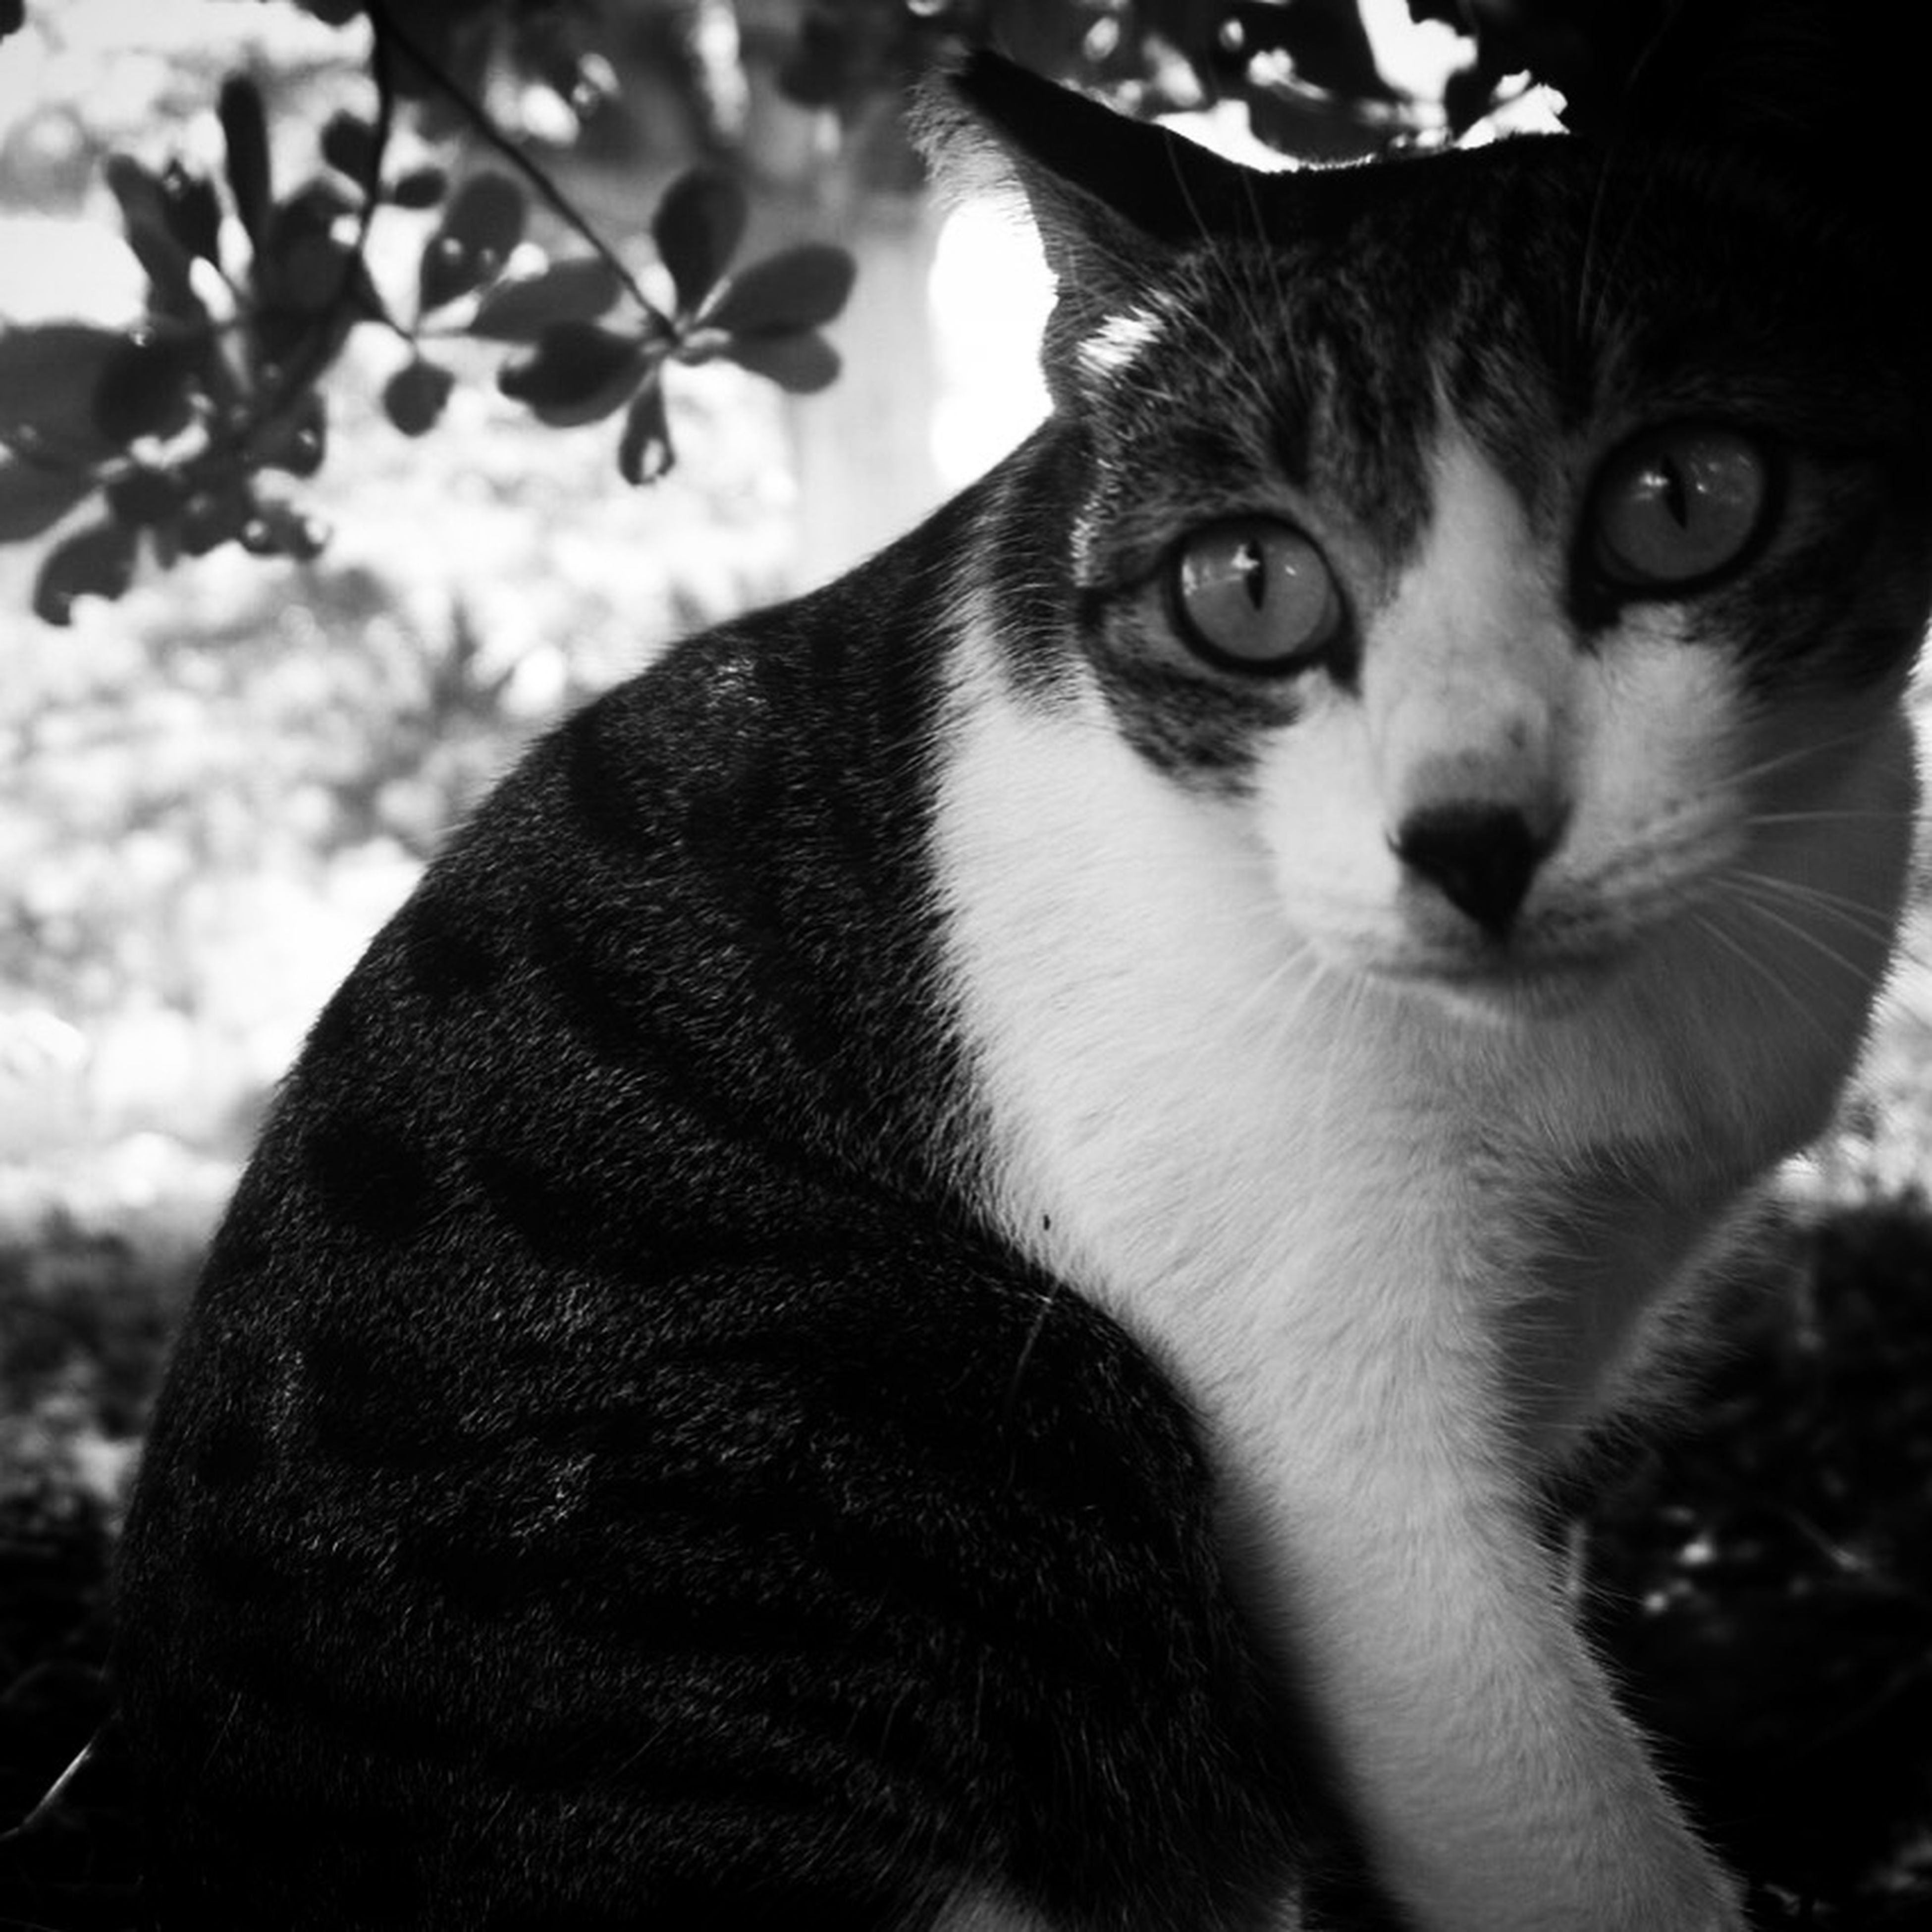 Black And White]ite Cats Animal